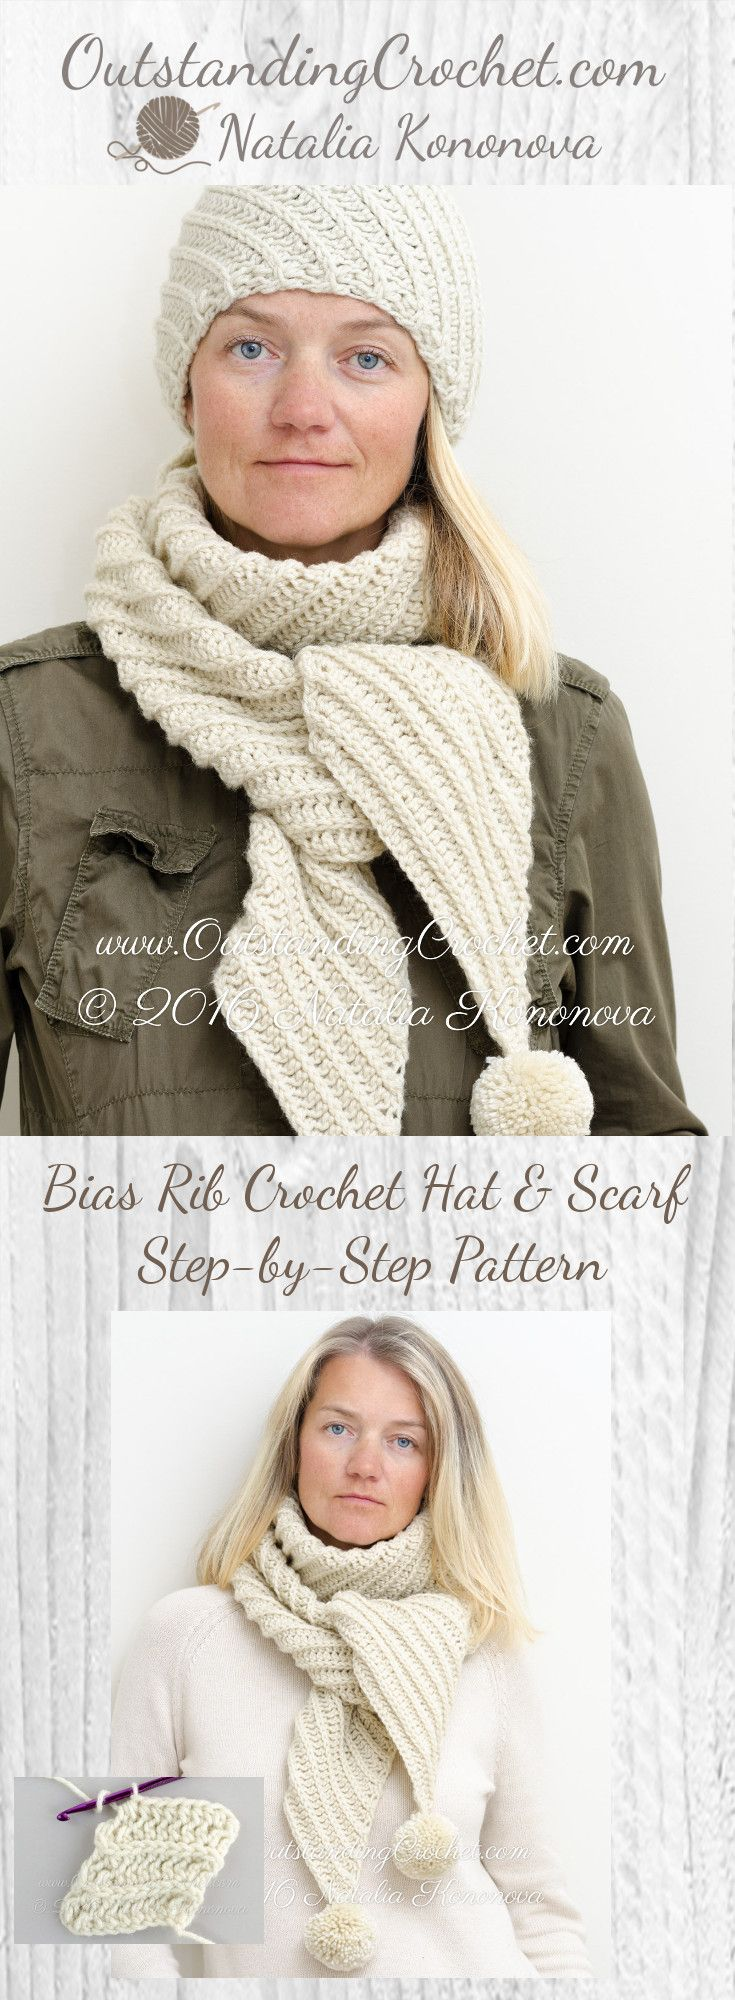 Bias Rib Stitch Crochet Hat and Scarf Step-by-Step Crochet Pattern at www.OutstandingCrochet.com